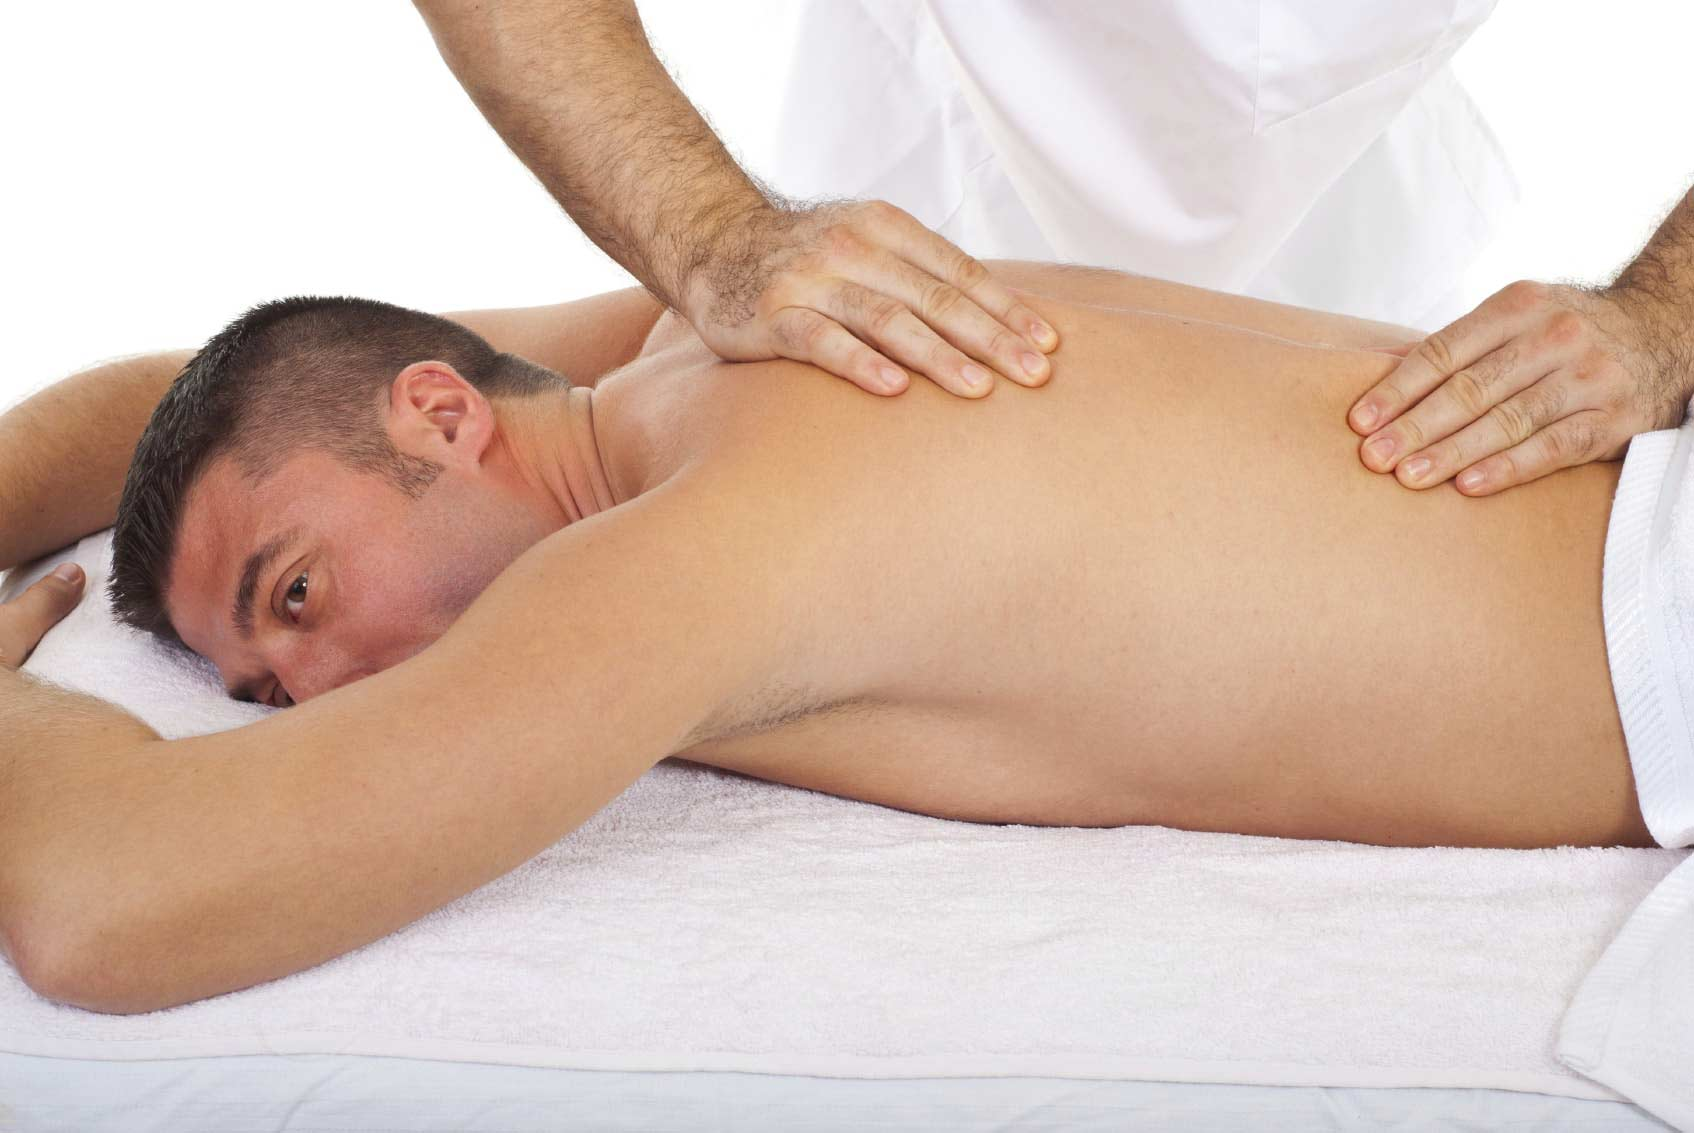 Massage at bangalore - 3 part 6